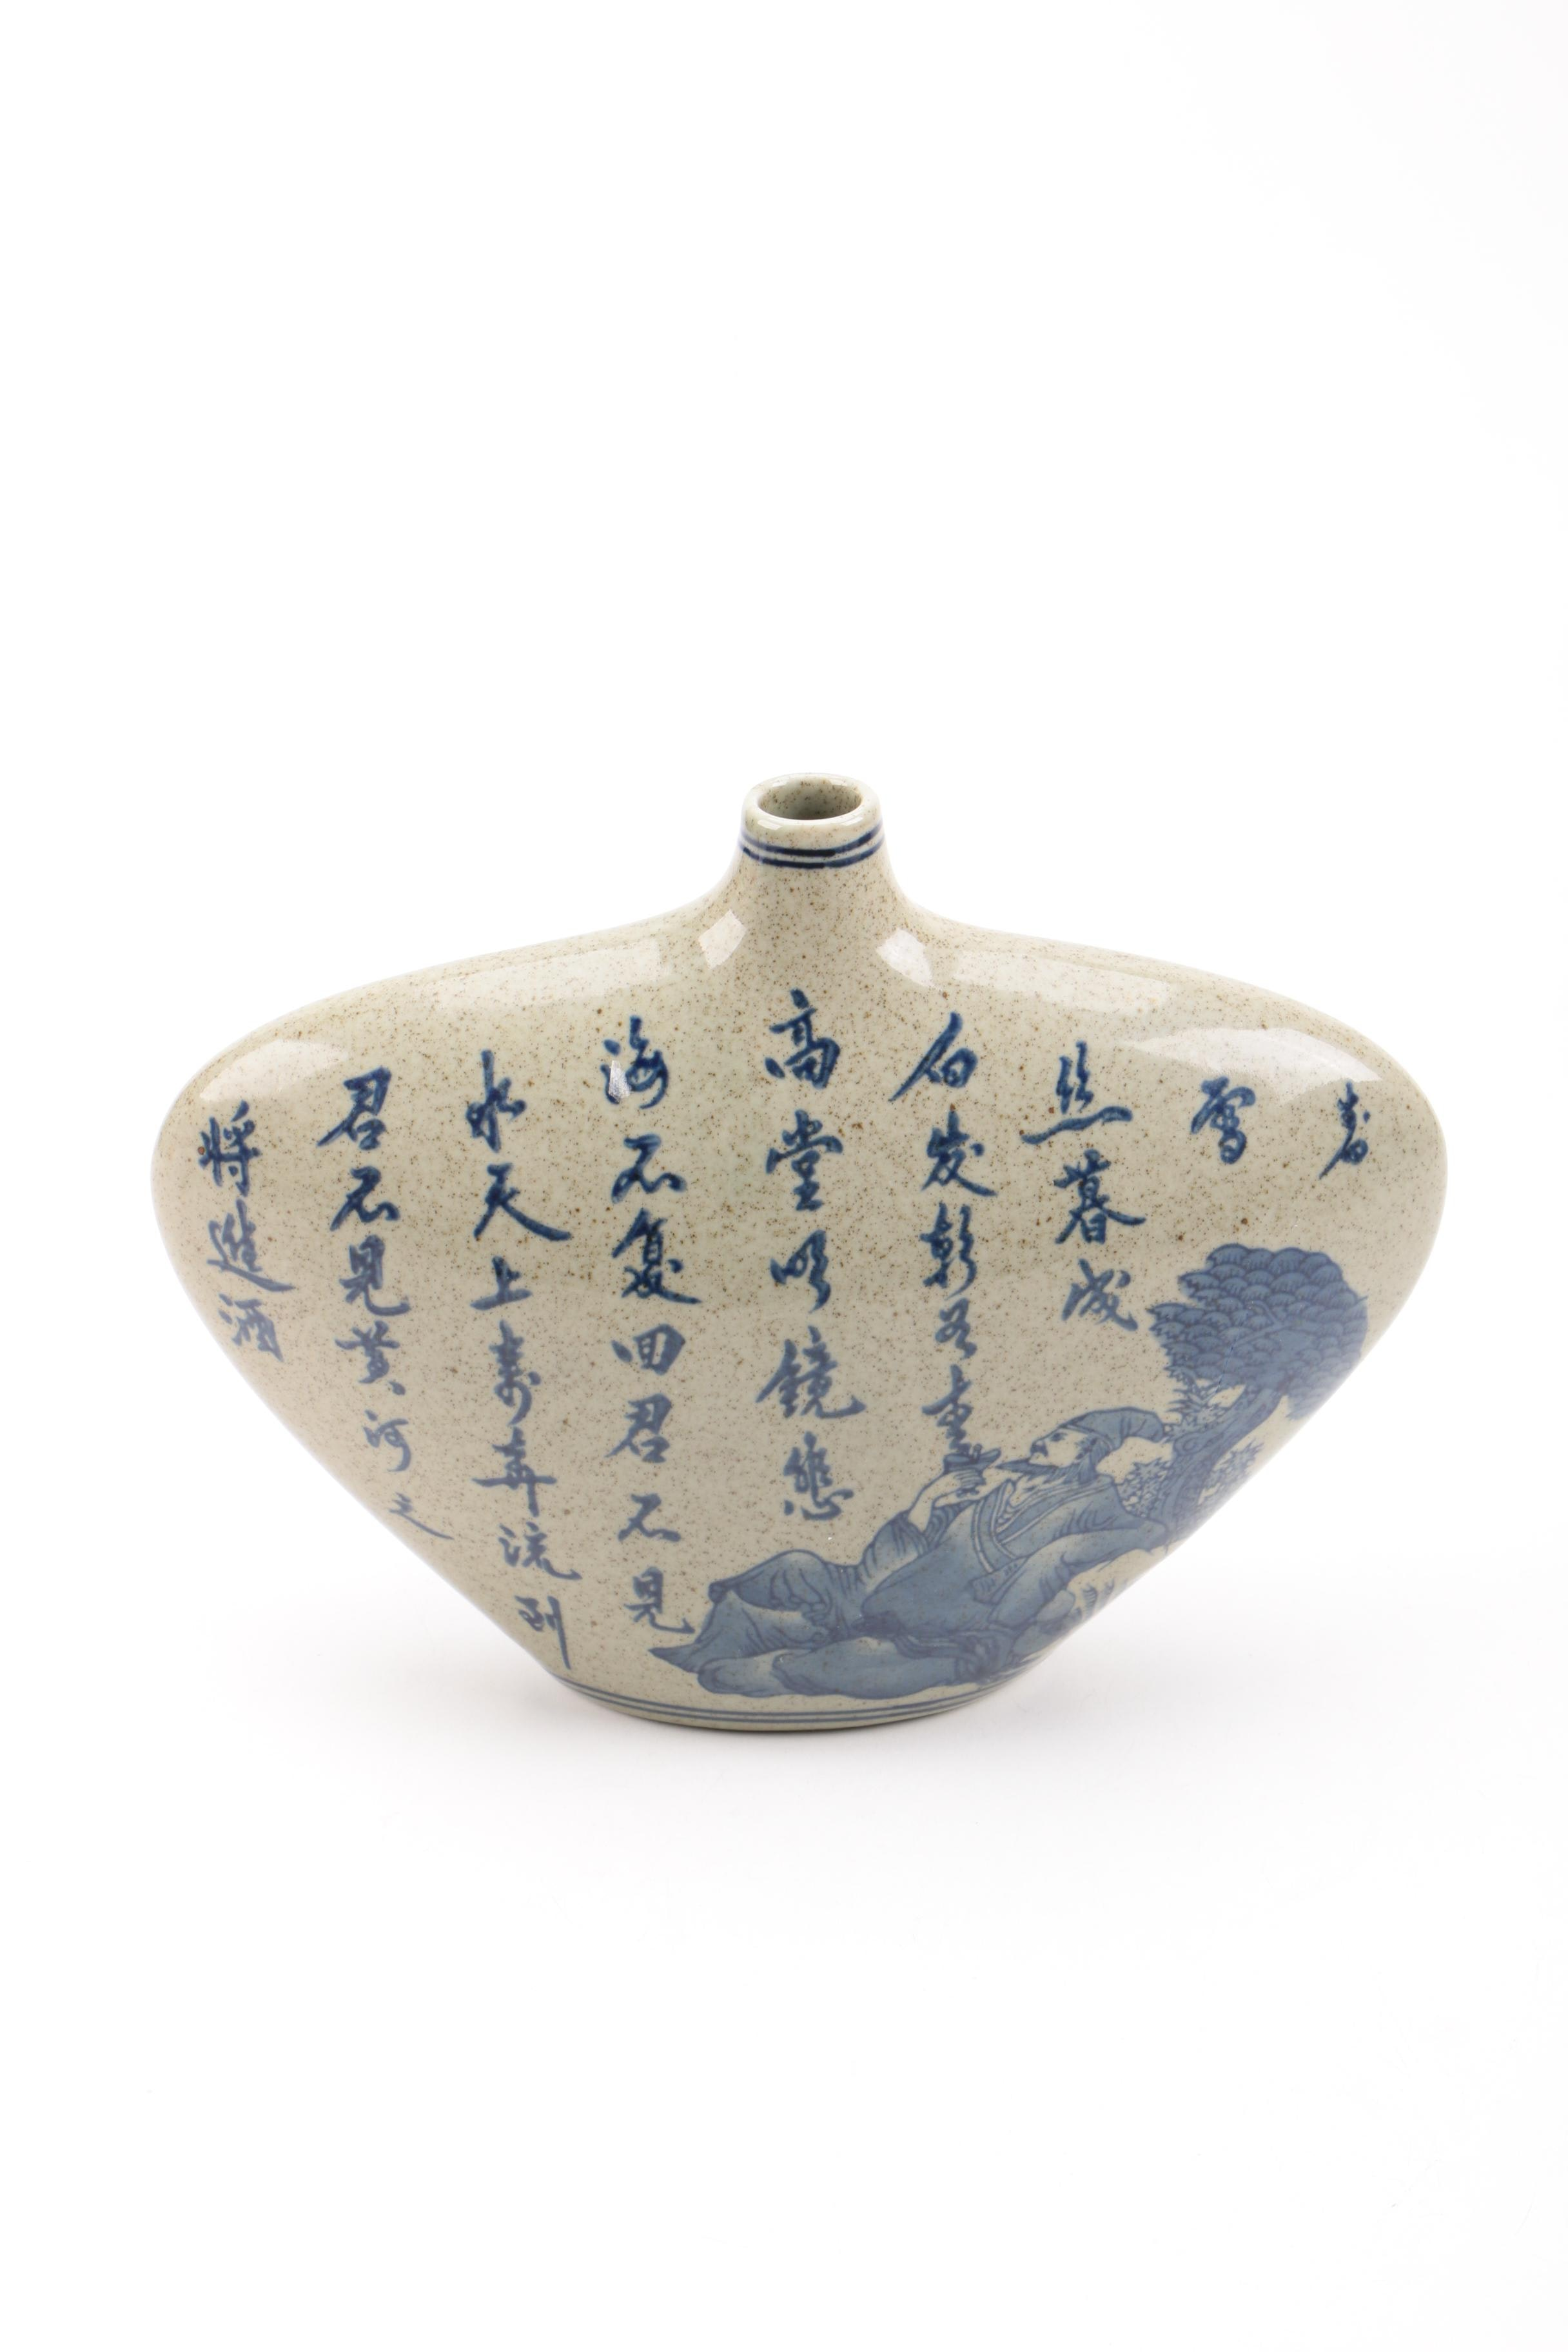 Chinese Ceramic Calligraphy Vase